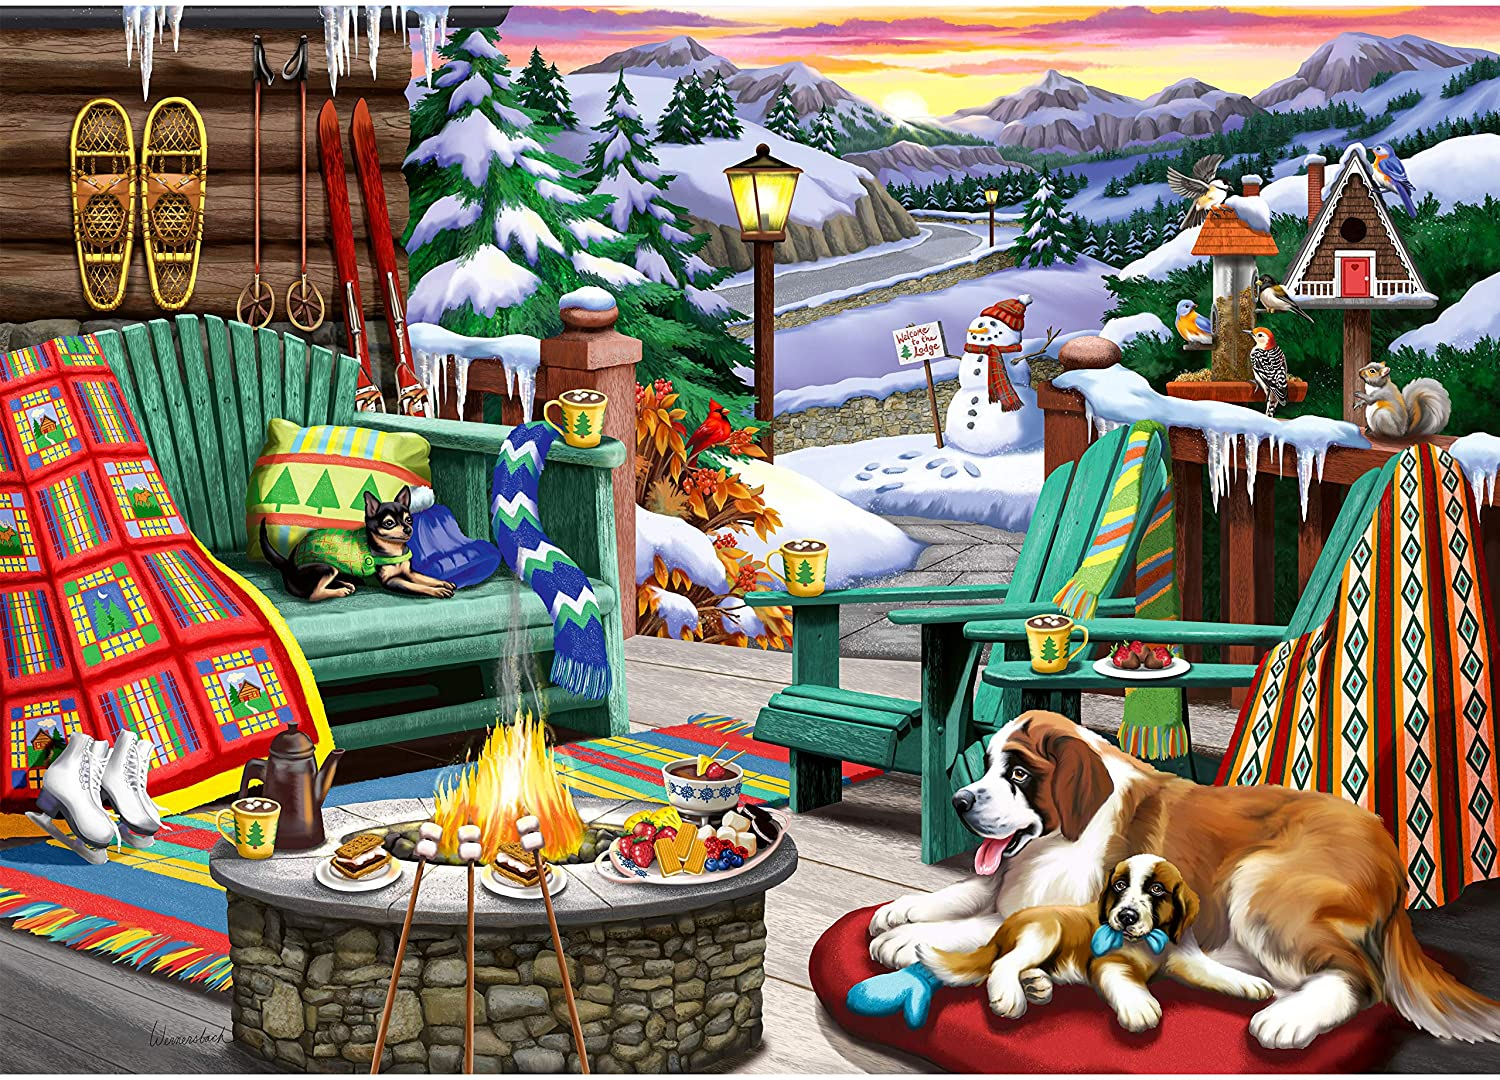 Ravensburger Cozy Series: Apres All Day 500 Piece Large Format Jigsaw Puzzle for Adults - Every Piece is Unique, Softclick Technology Means Pieces Fit Together Perfectly, (Model: 16442)